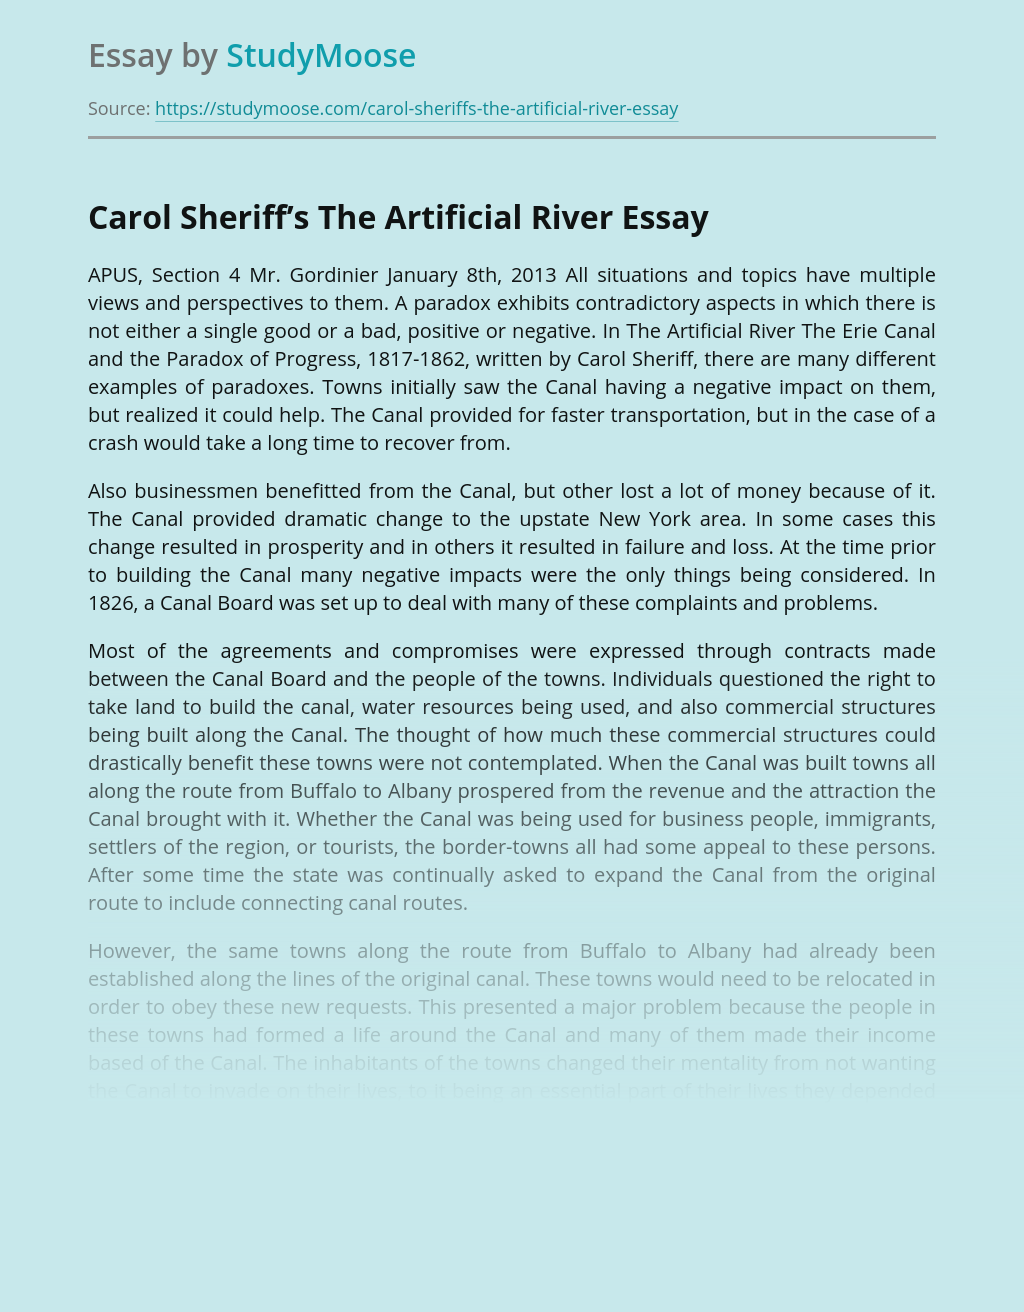 Carol Sheriff's The Artificial River